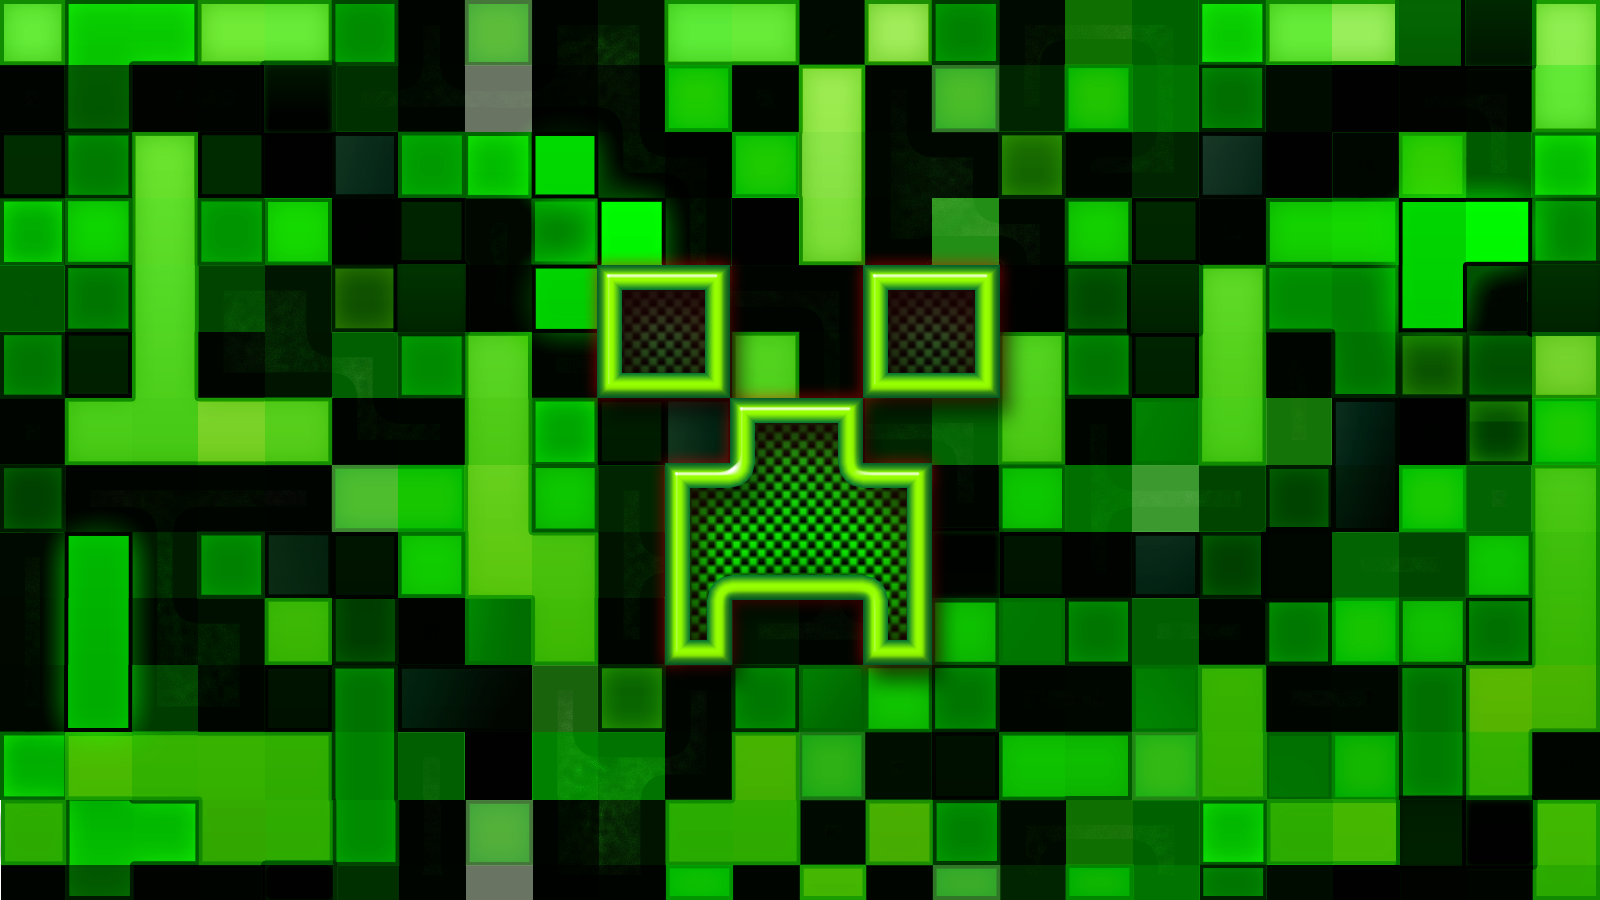 Creeper by iammrx on deviantart creeper by iammrx creeper by iammrx voltagebd Image collections